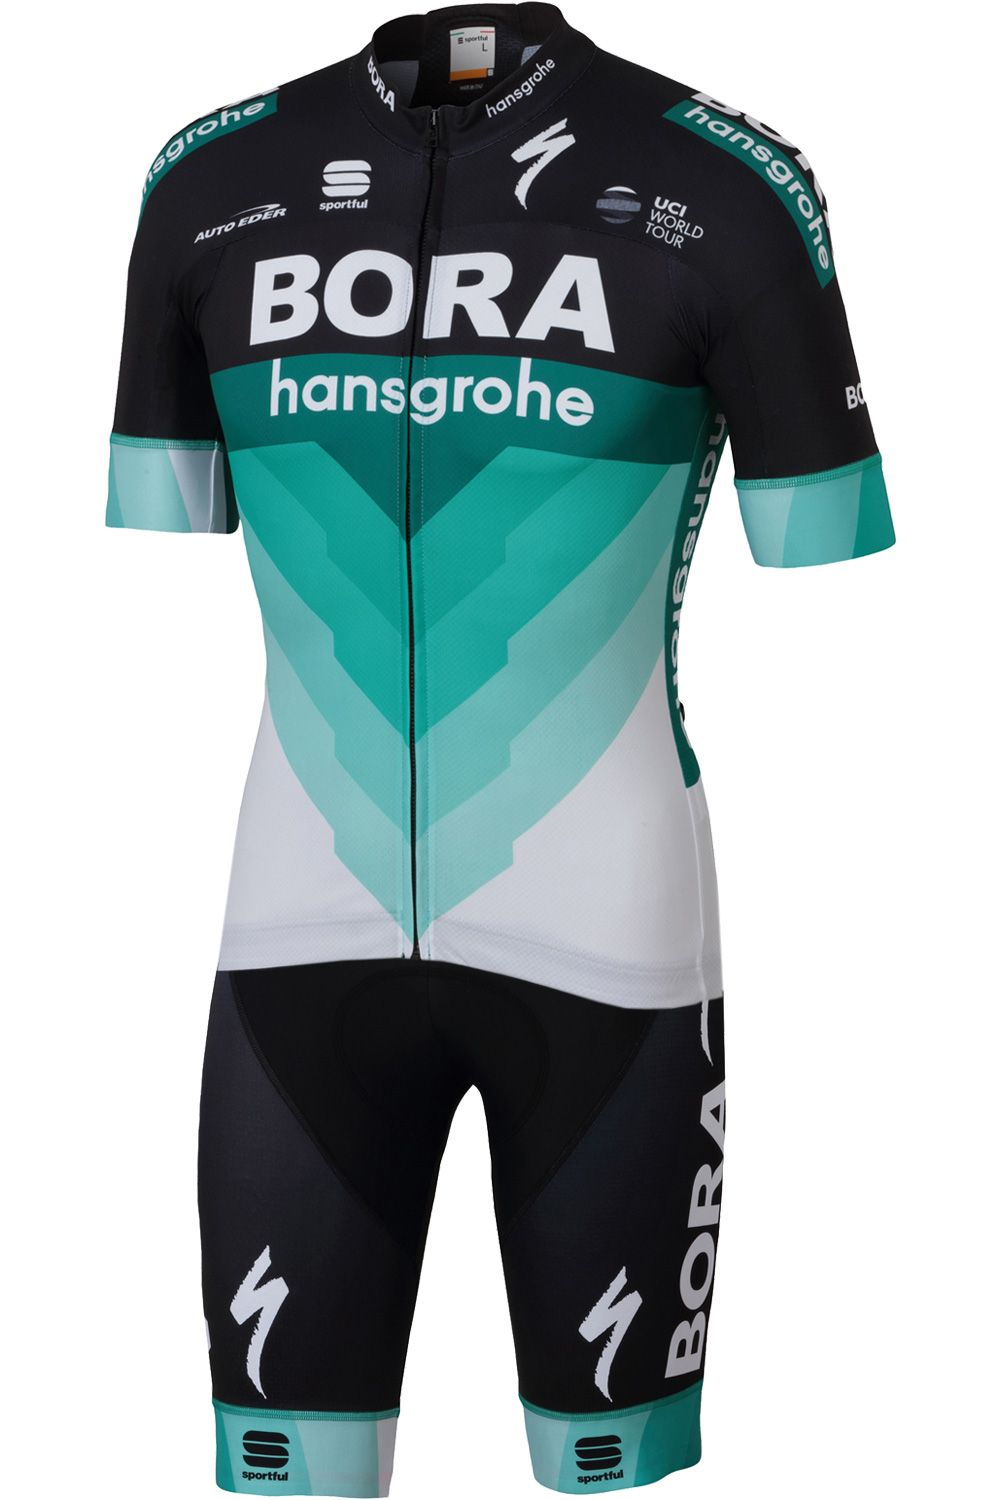 trikotexpress bora hansgrohe 2018 tr gerhose kurz sportful radsport profi team gr e xl 5. Black Bedroom Furniture Sets. Home Design Ideas